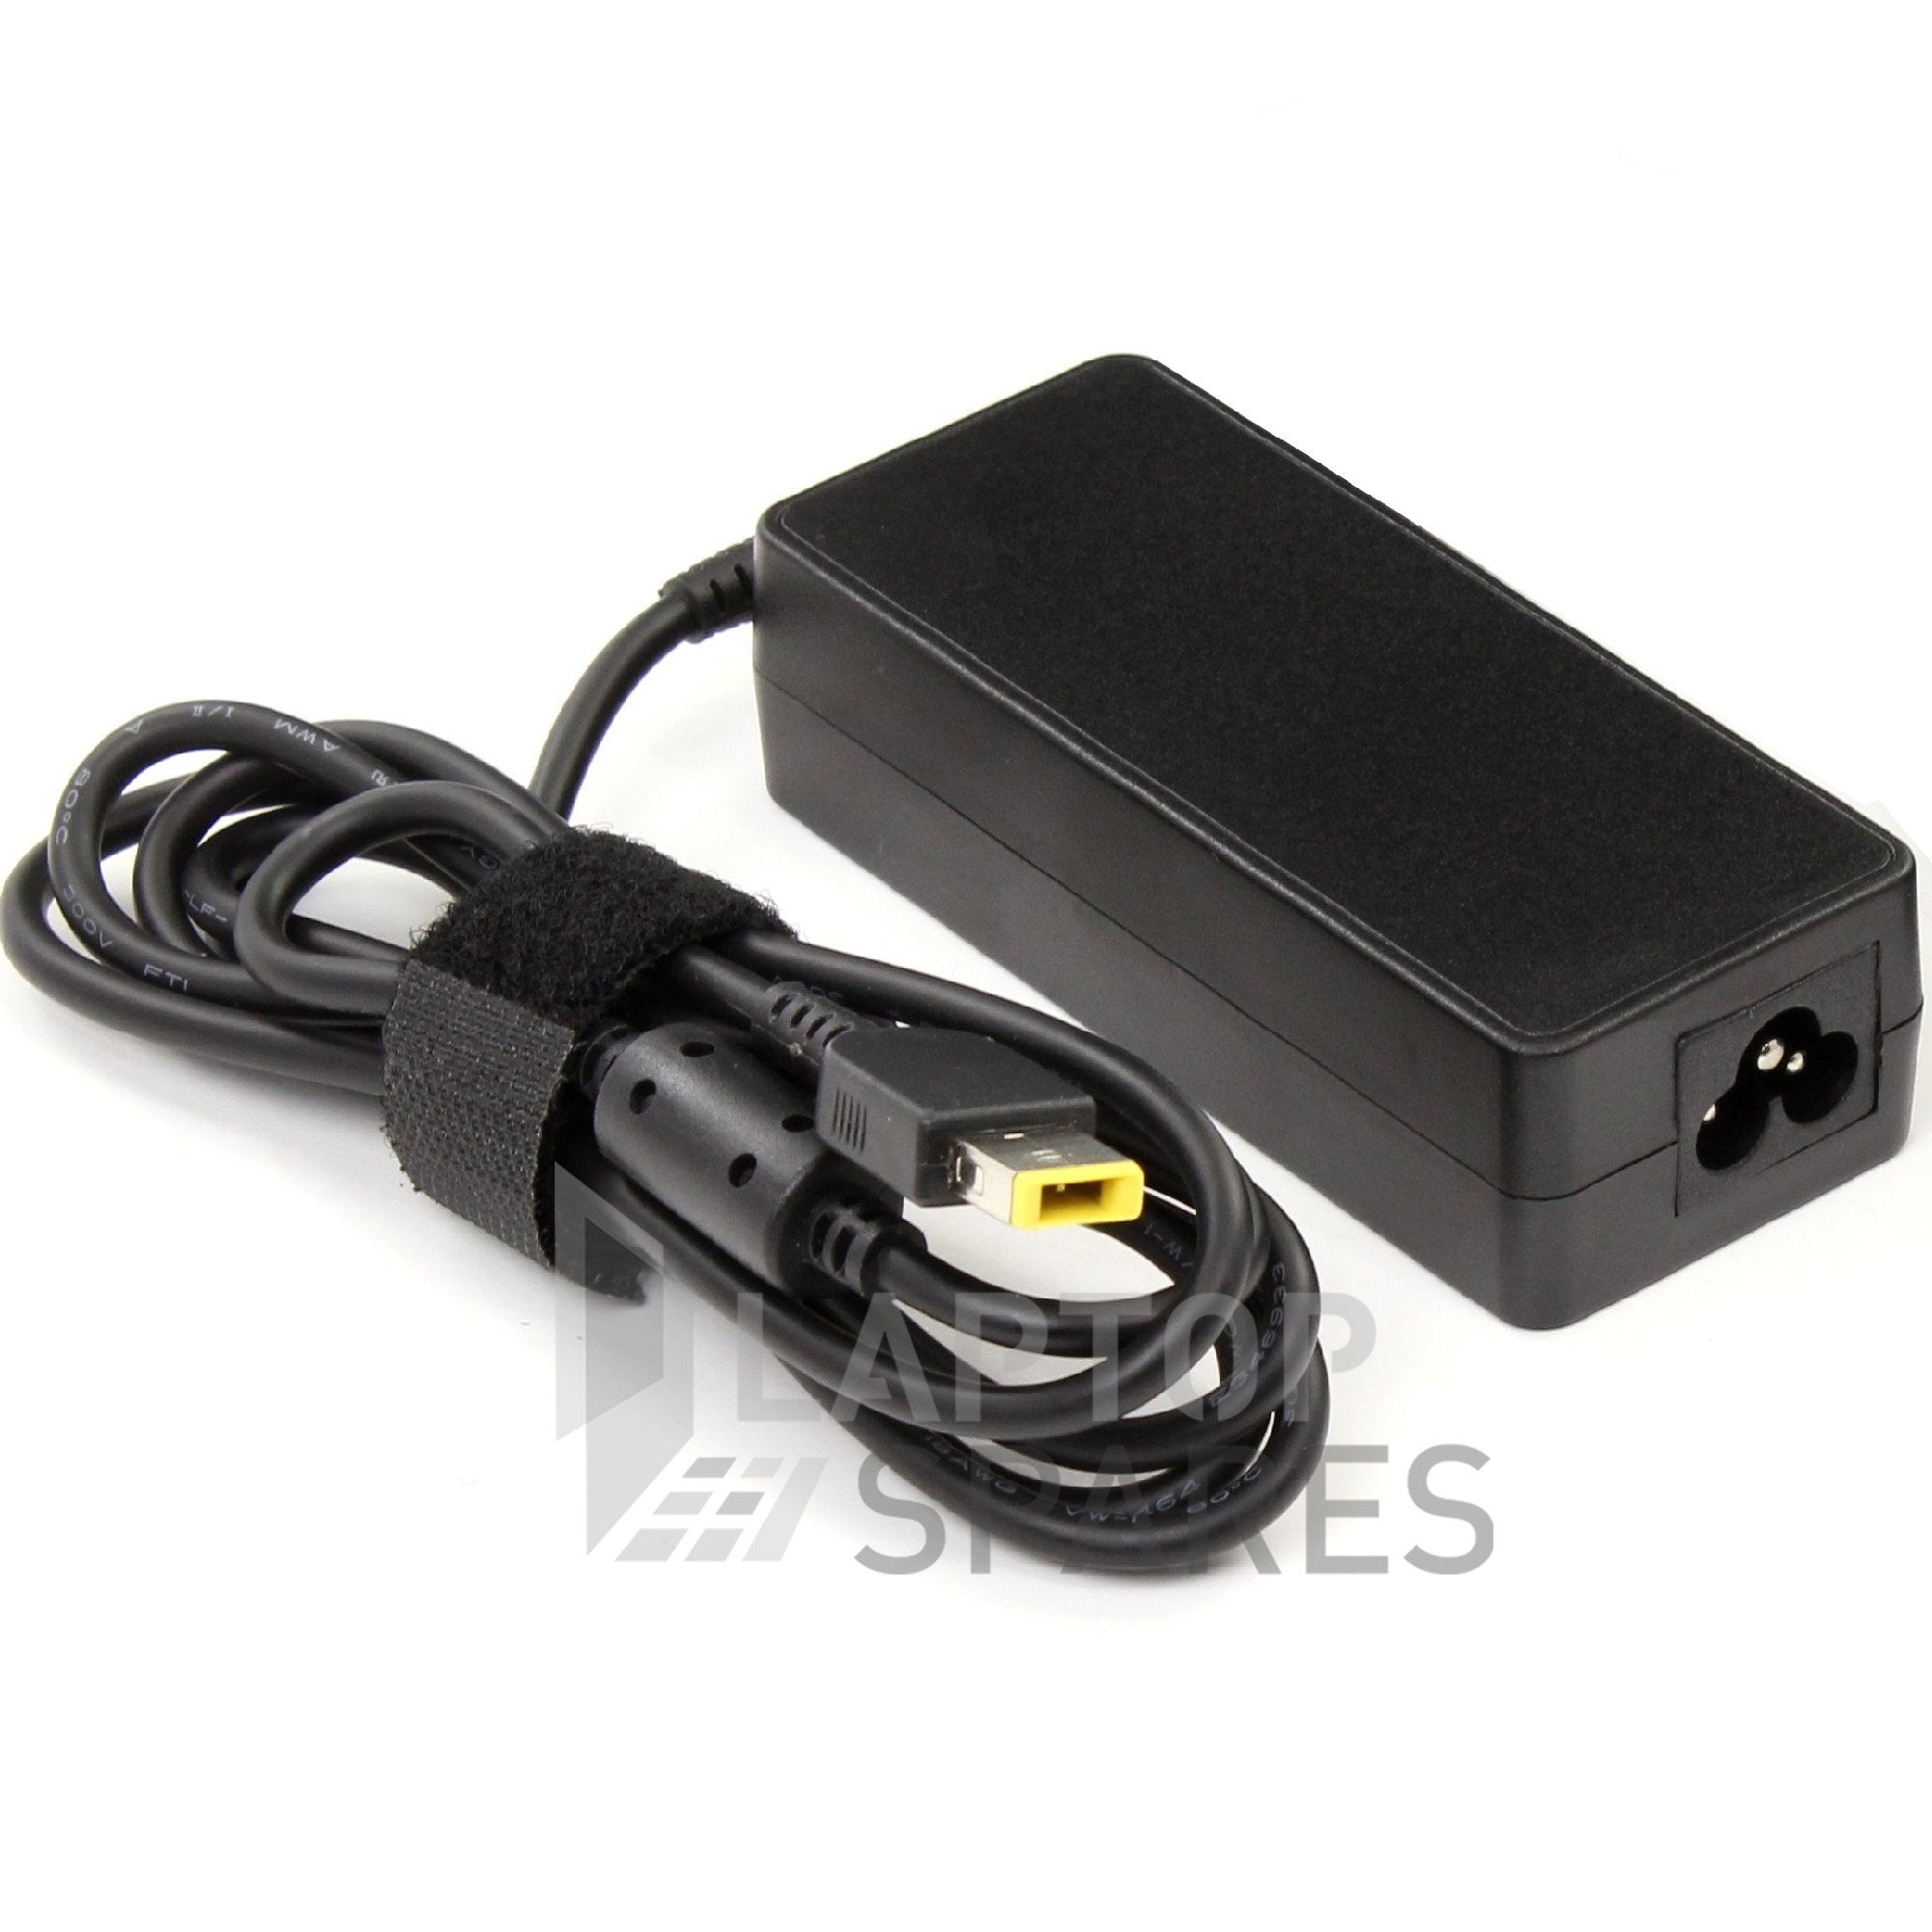 Lenovo CARBON 1ST, 2ND & 3RD GEN Laptop AC Adapter Charger